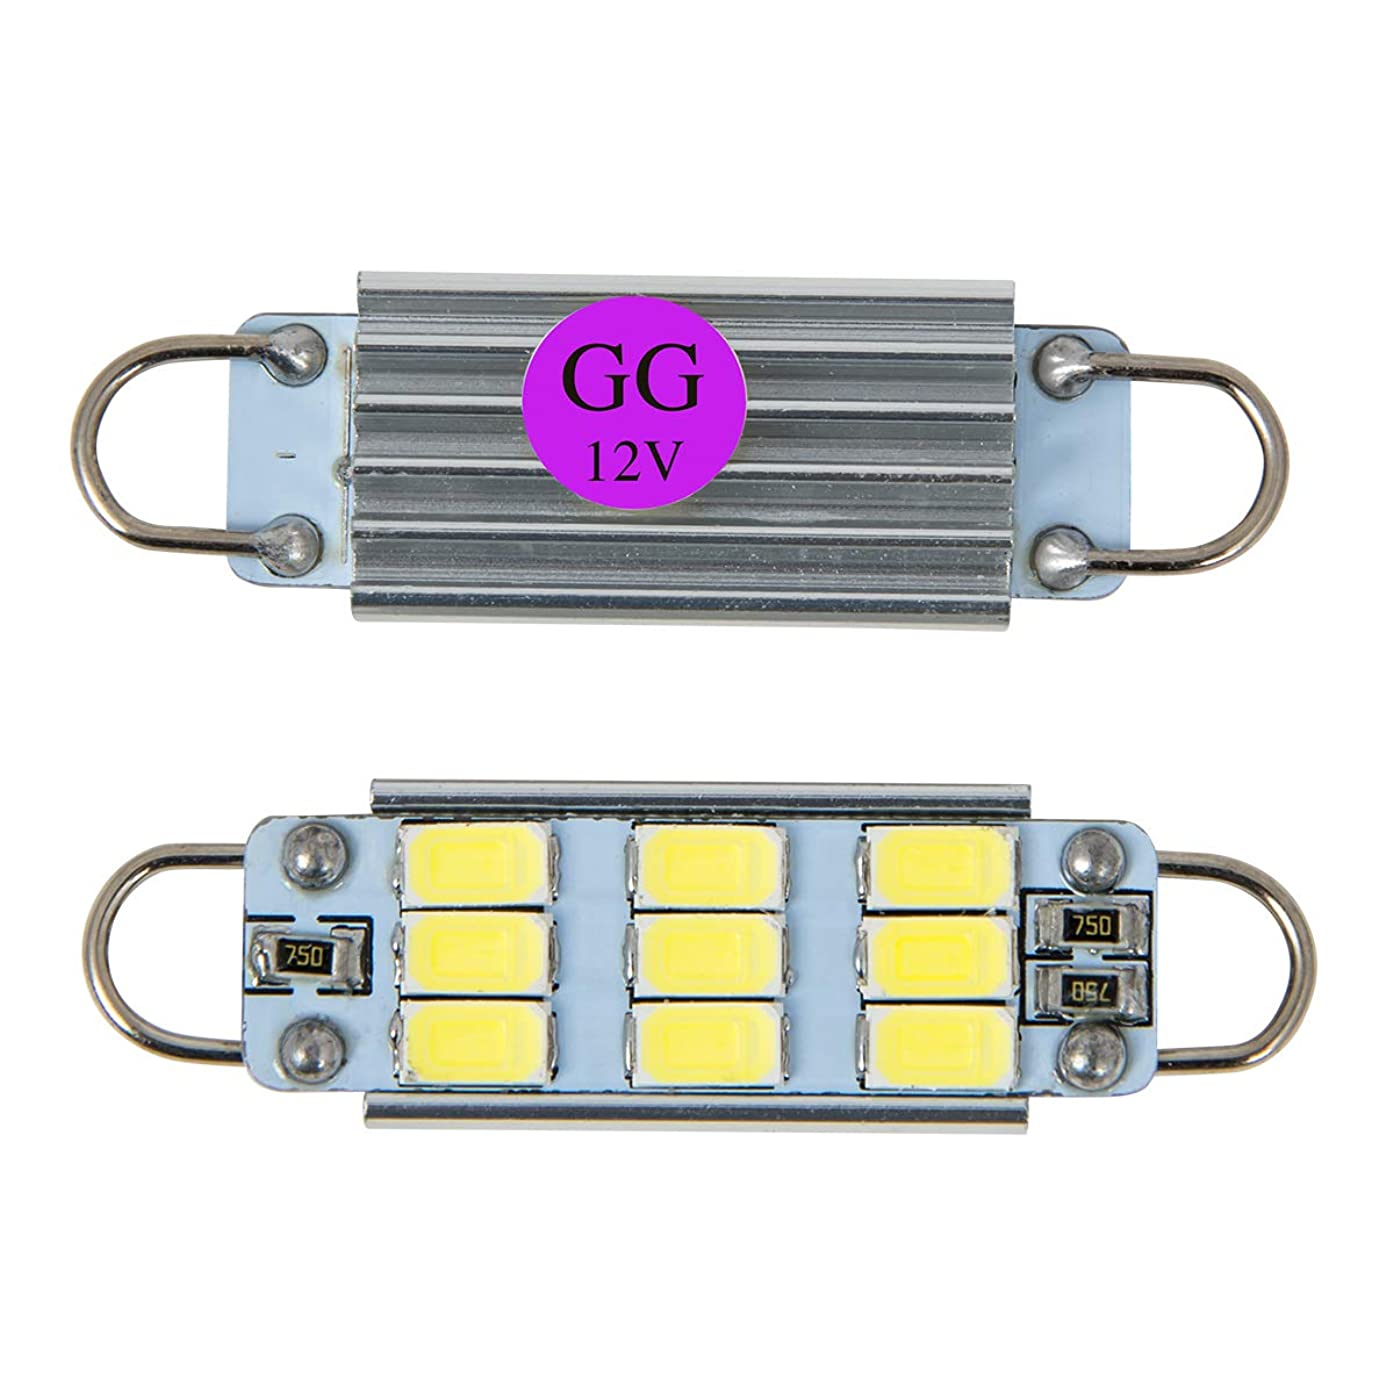 GG Grand General 70635 9 LED) Light Bulb (561 Purple 9LED Interior Dome with Heat Sink, 12V)